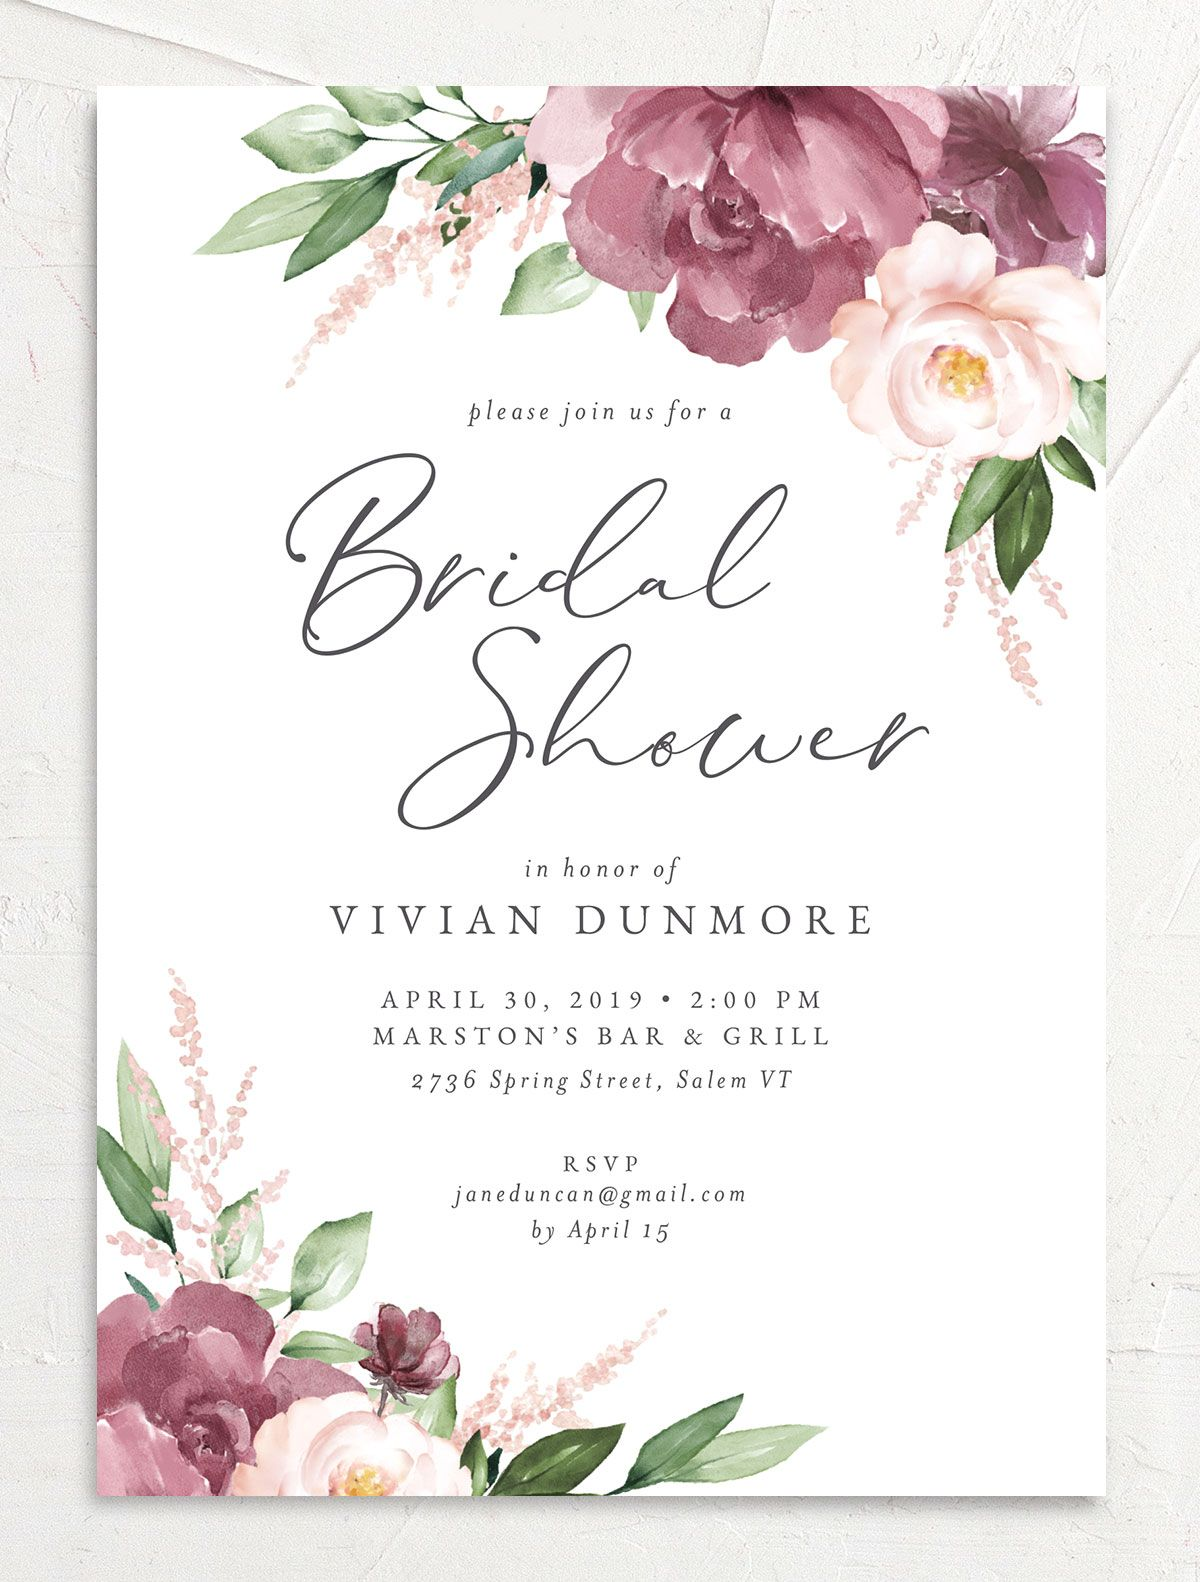 Beloved Floral Bridal Shower Invitation front in pink